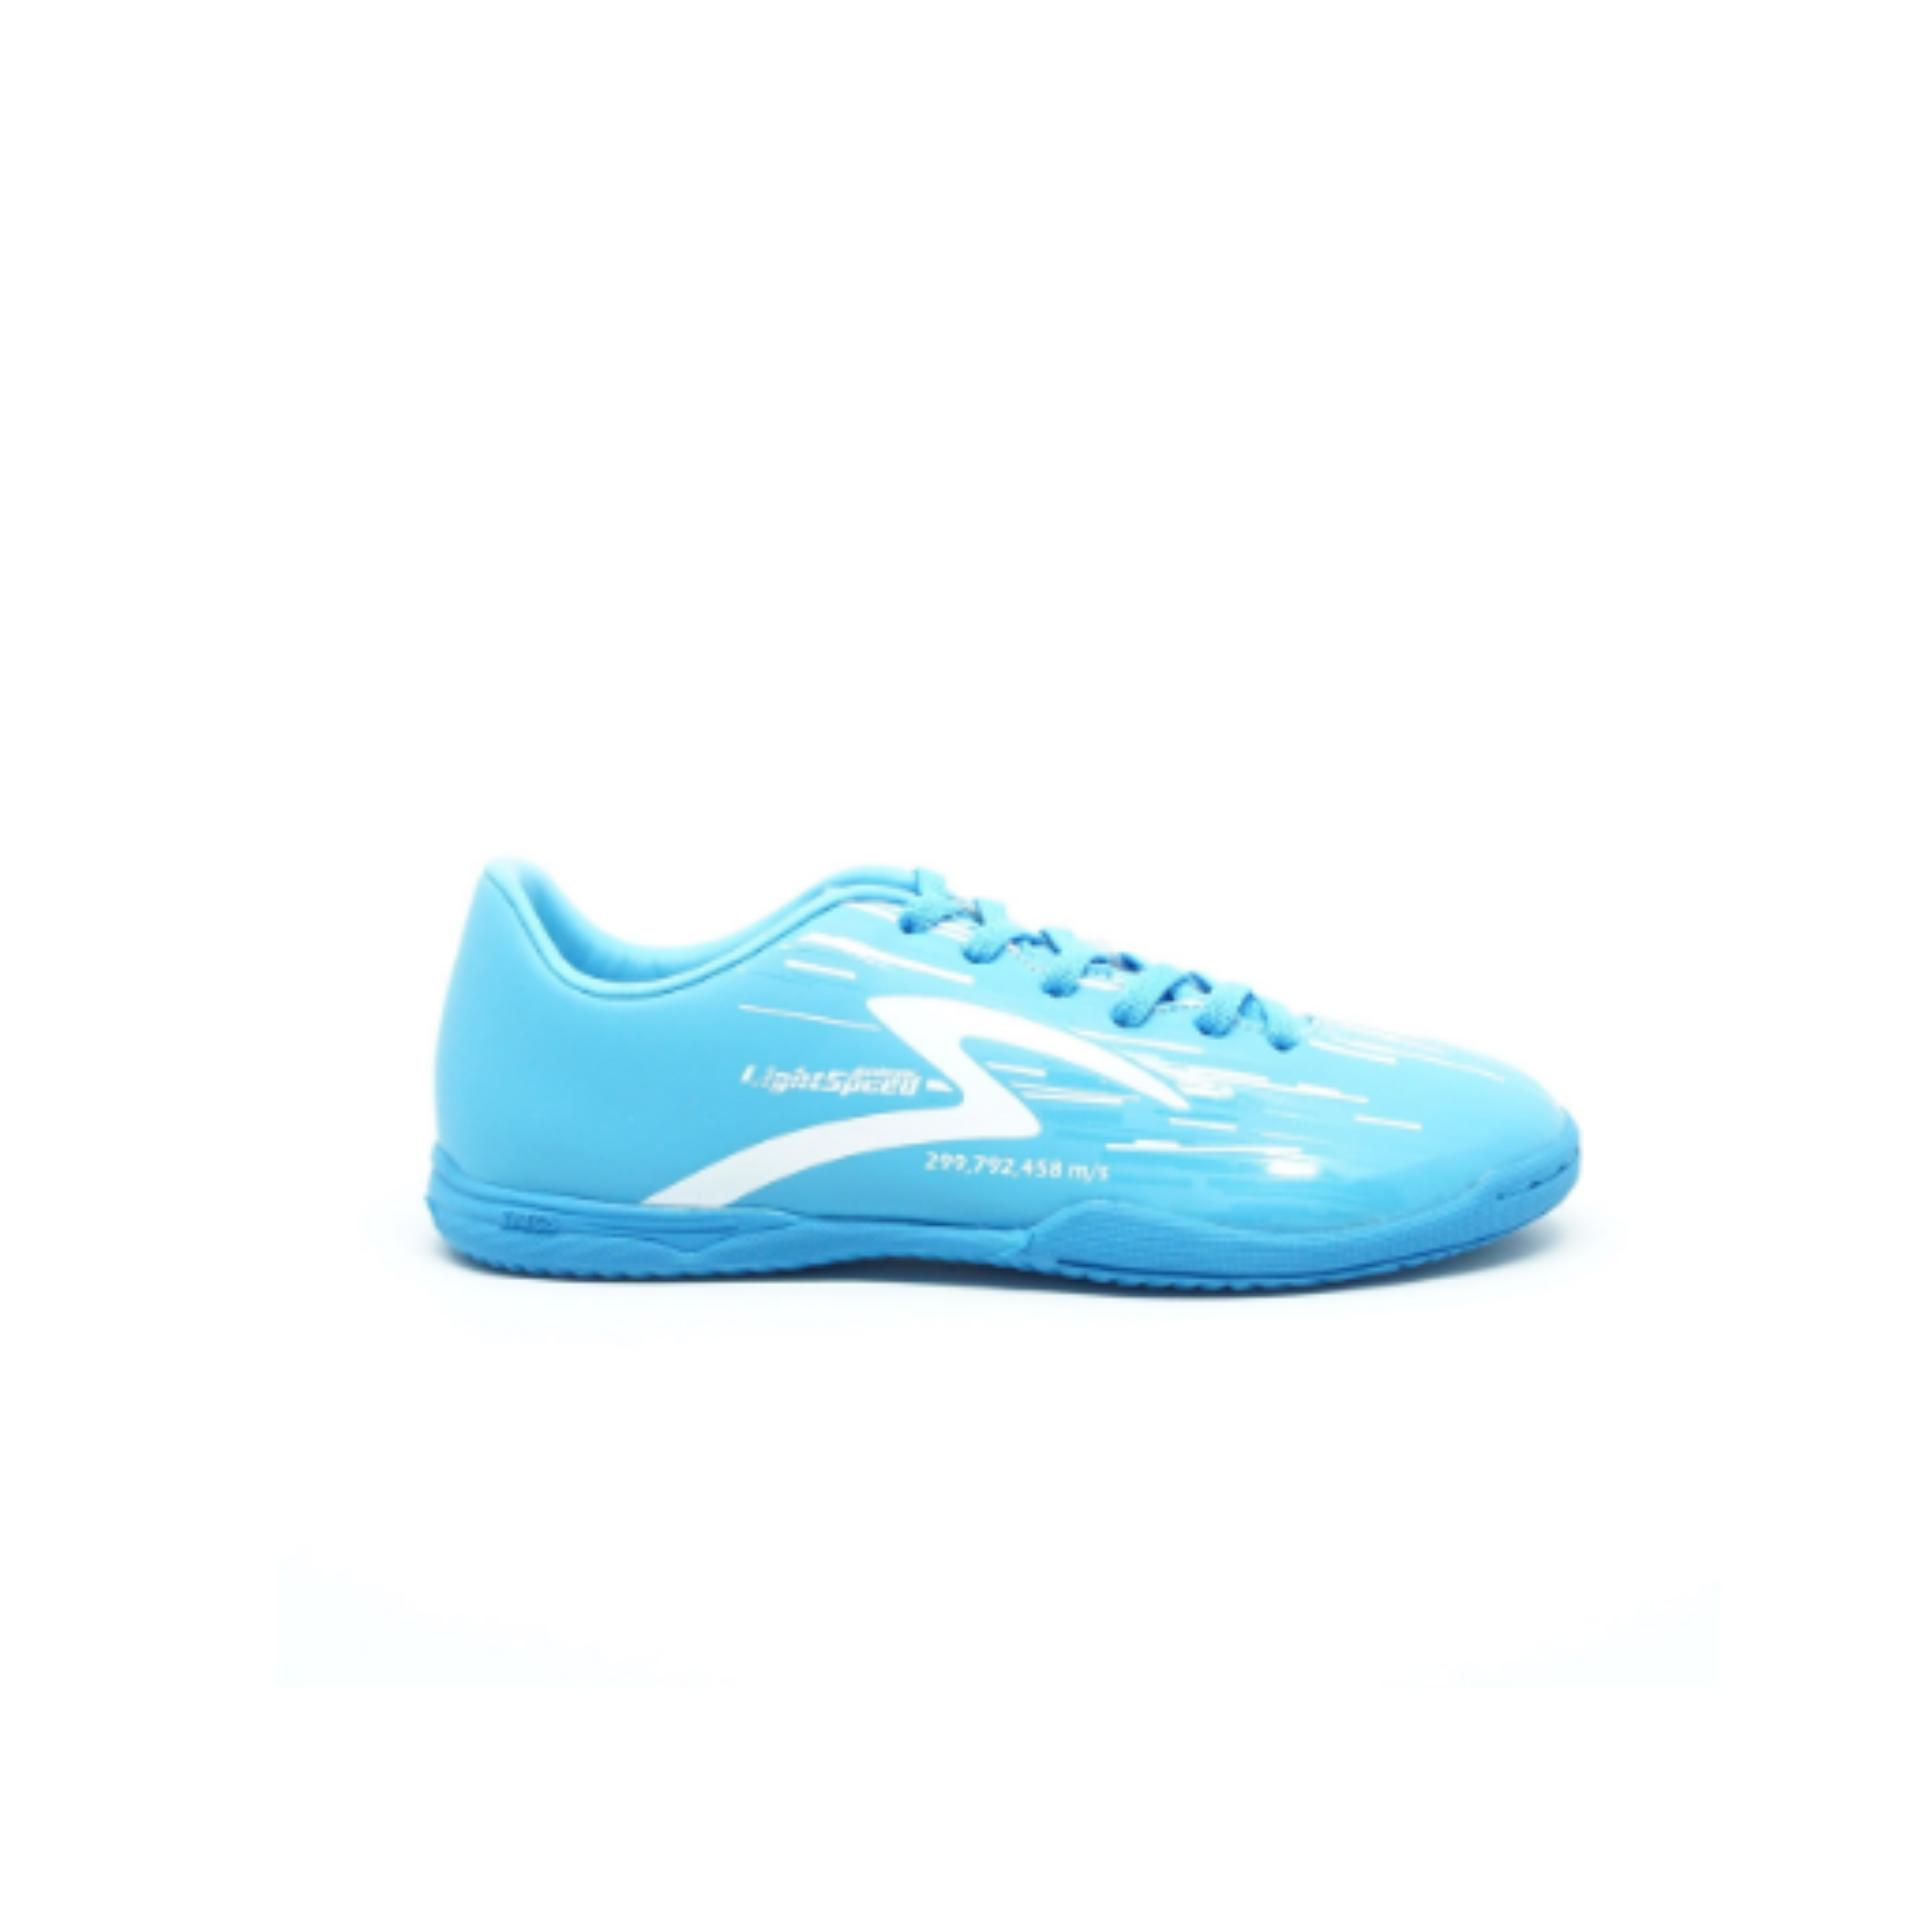 Specs Accelerator Lightspeed In Jr - Blue/White